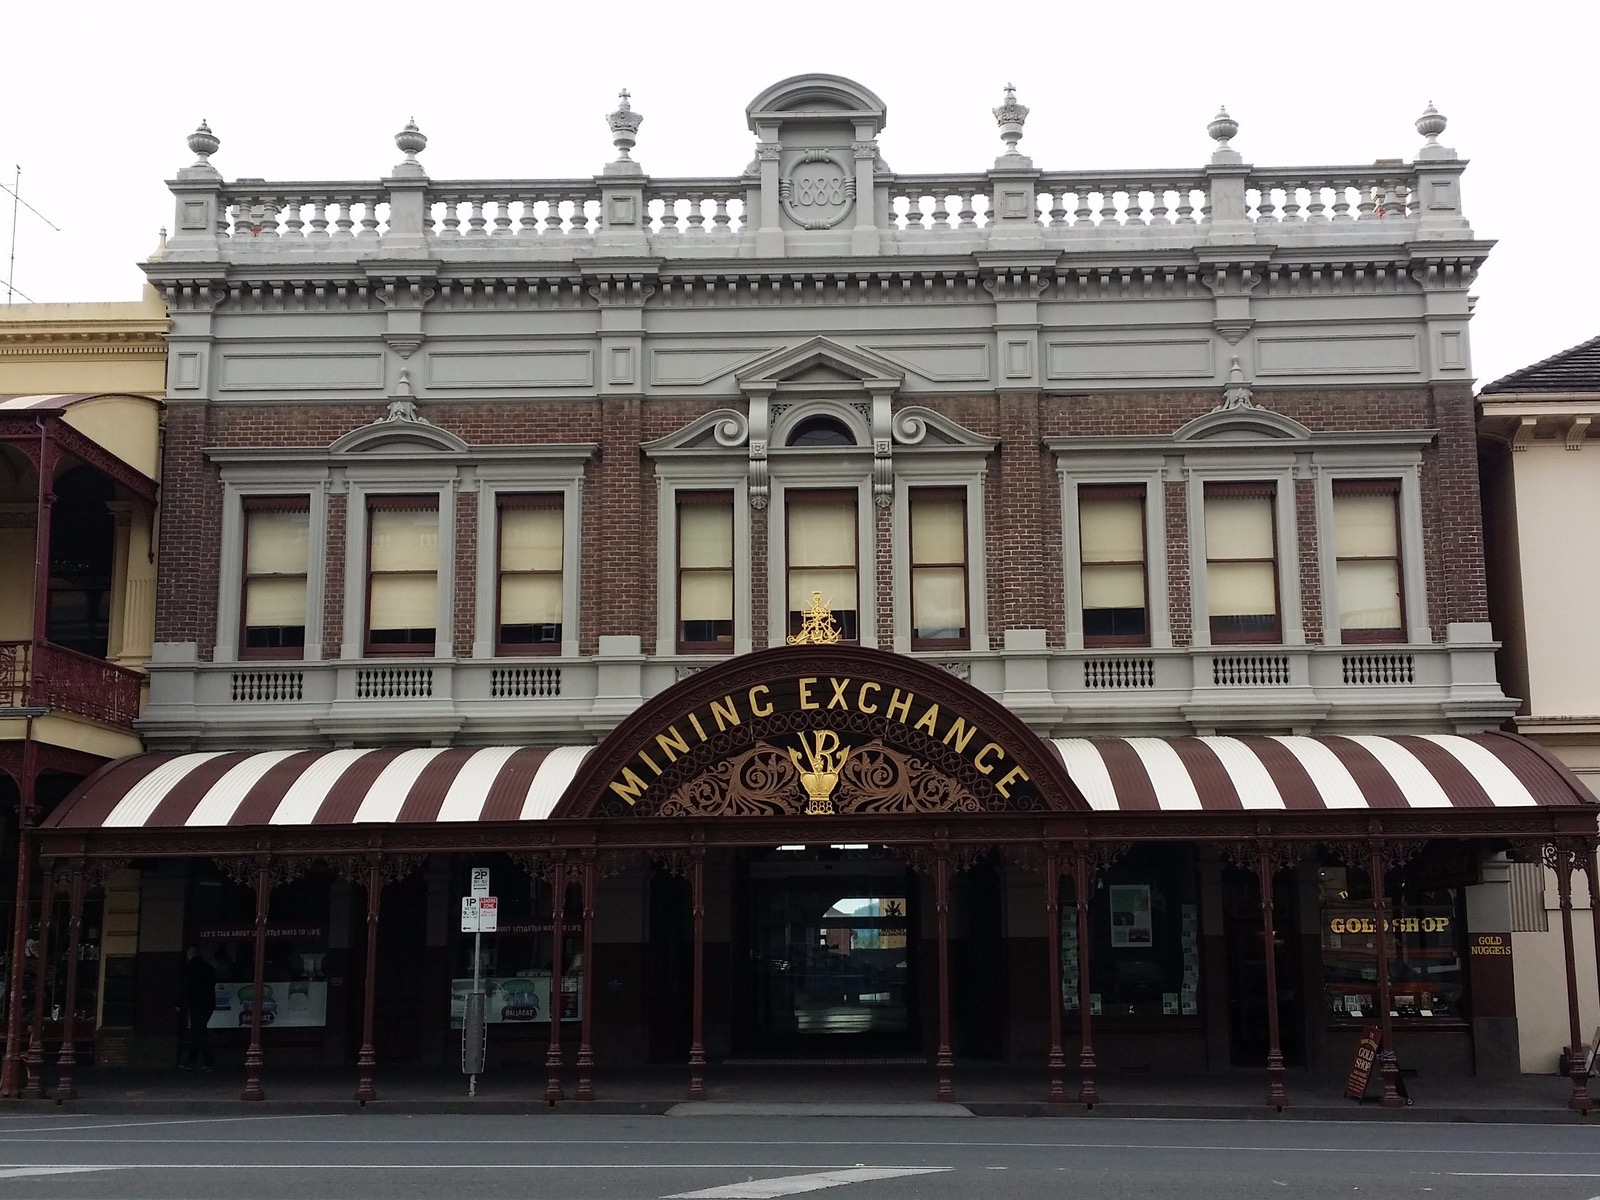 Venue - Ballarat Mining Exchane